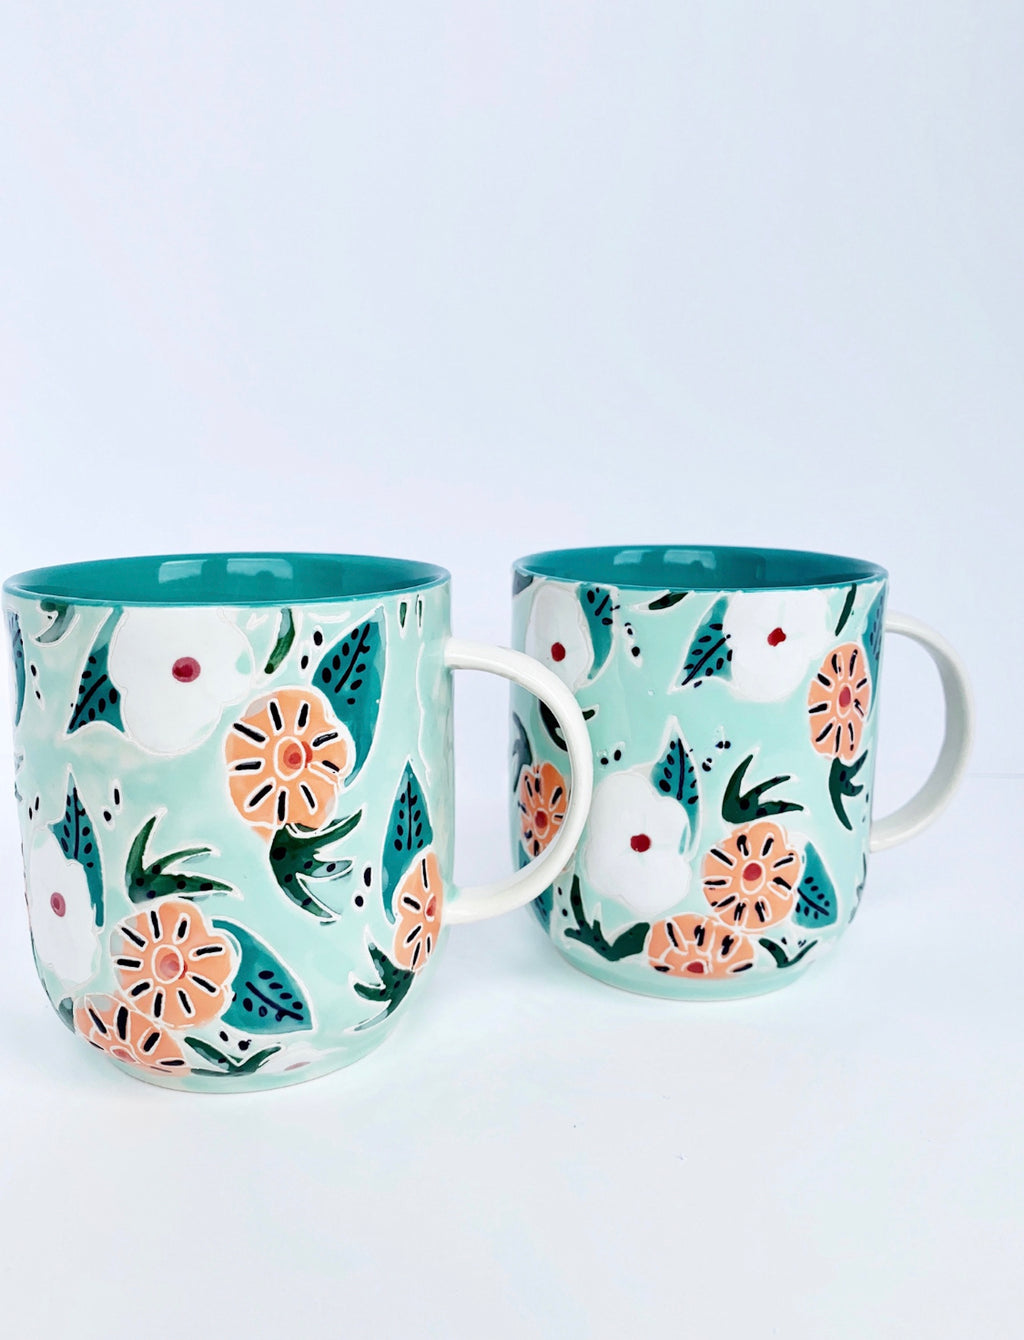 Anthropologie Mathilde Mug